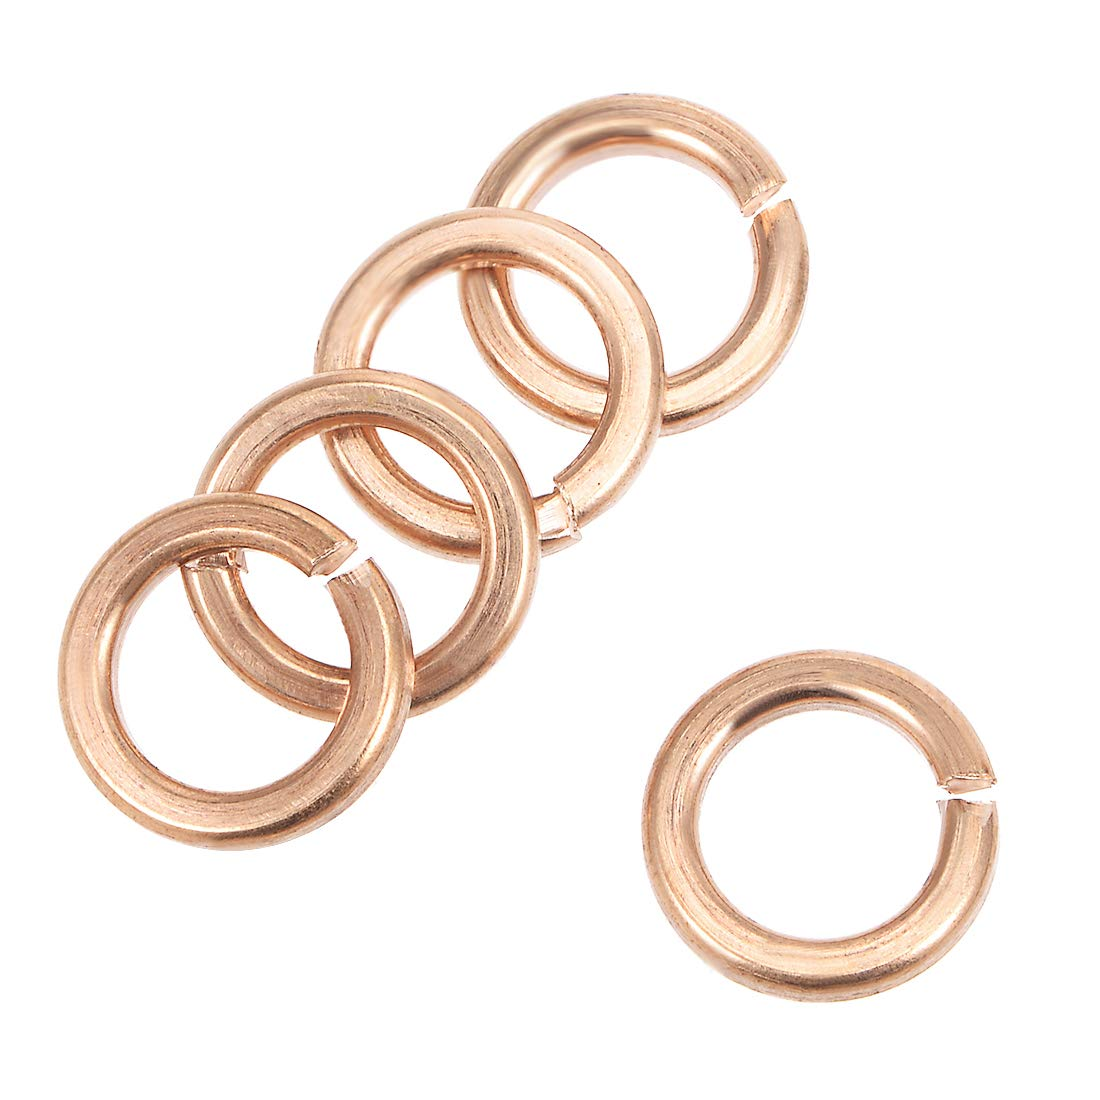 uxcell 5Pcs 30.3mm x 38mm x 1.5mm Copper Flat Washer for Screw Bolt